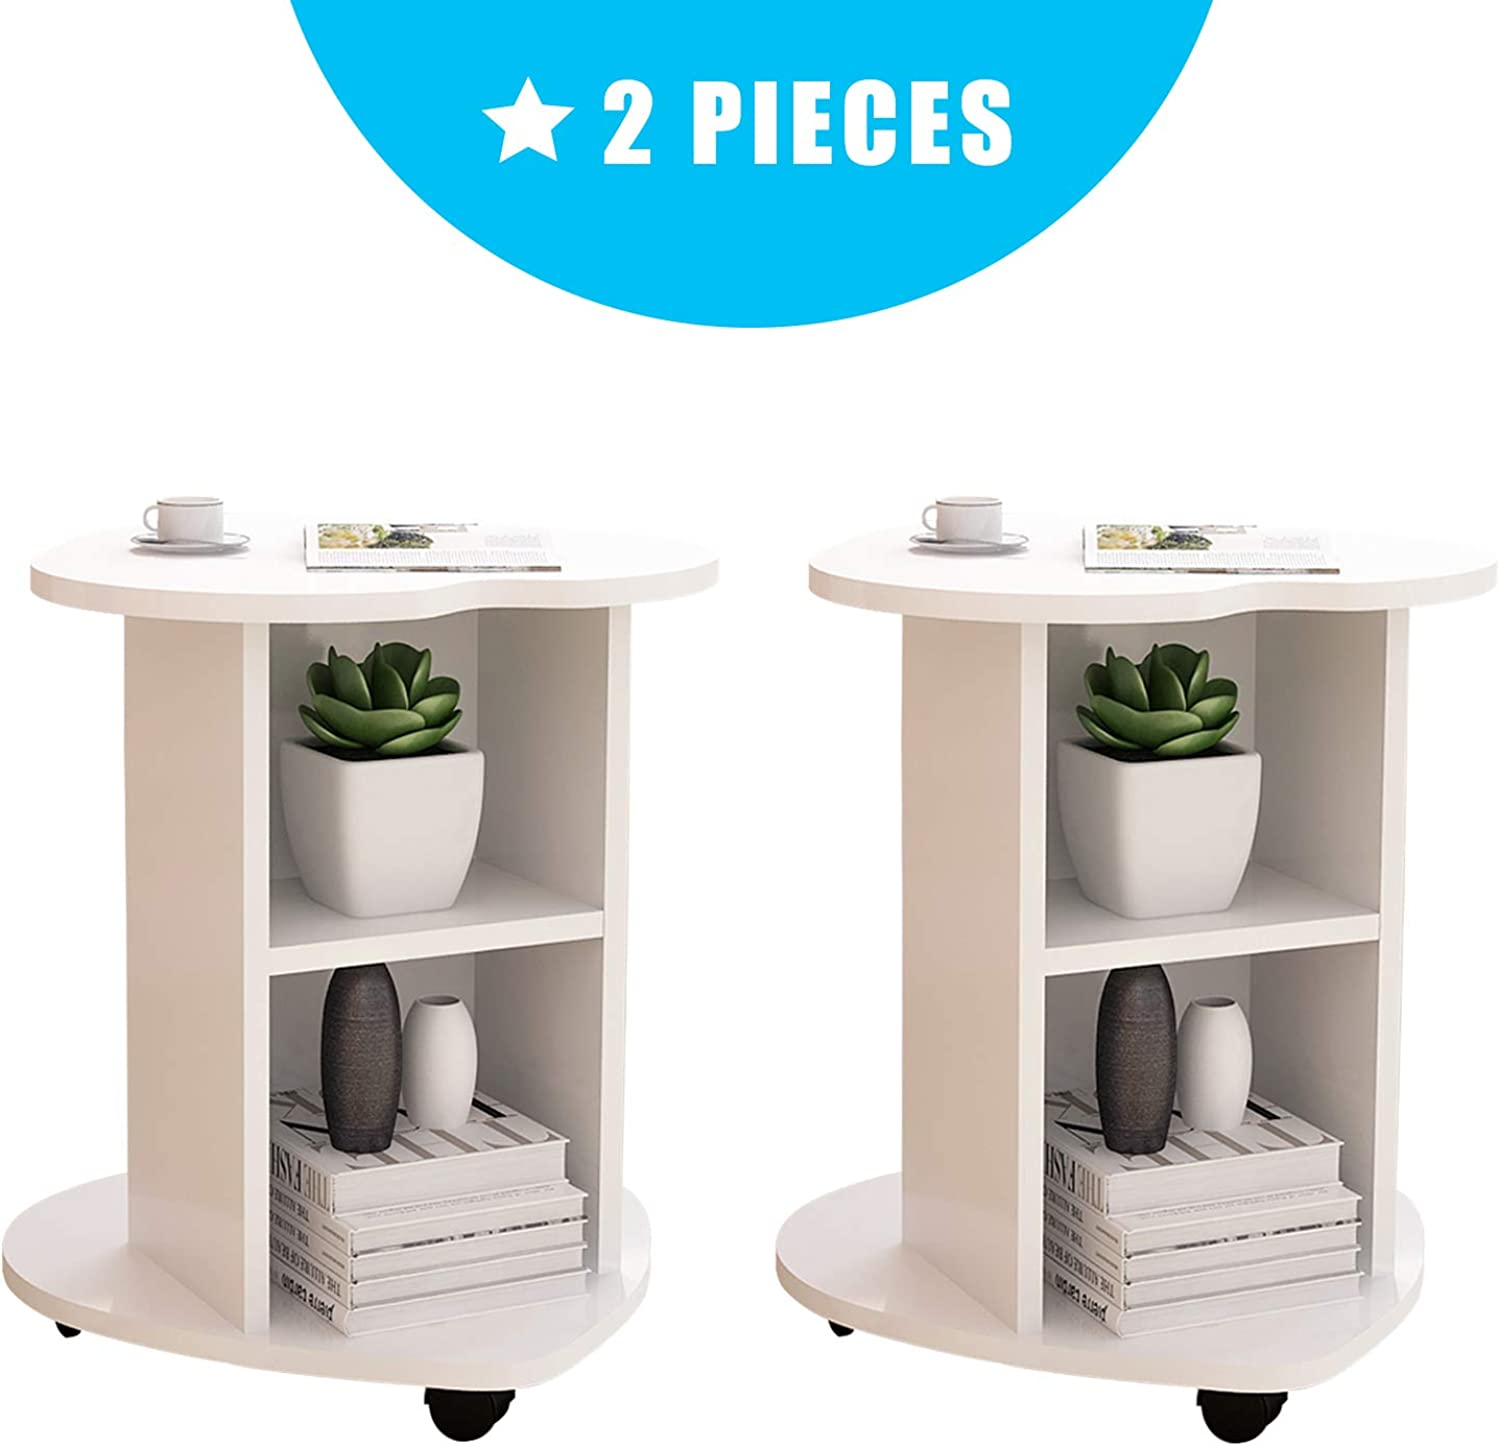 DL furniture - (Set of 2) Small Coffee Table Bedside Cabinet Sofa Small Side Table   White